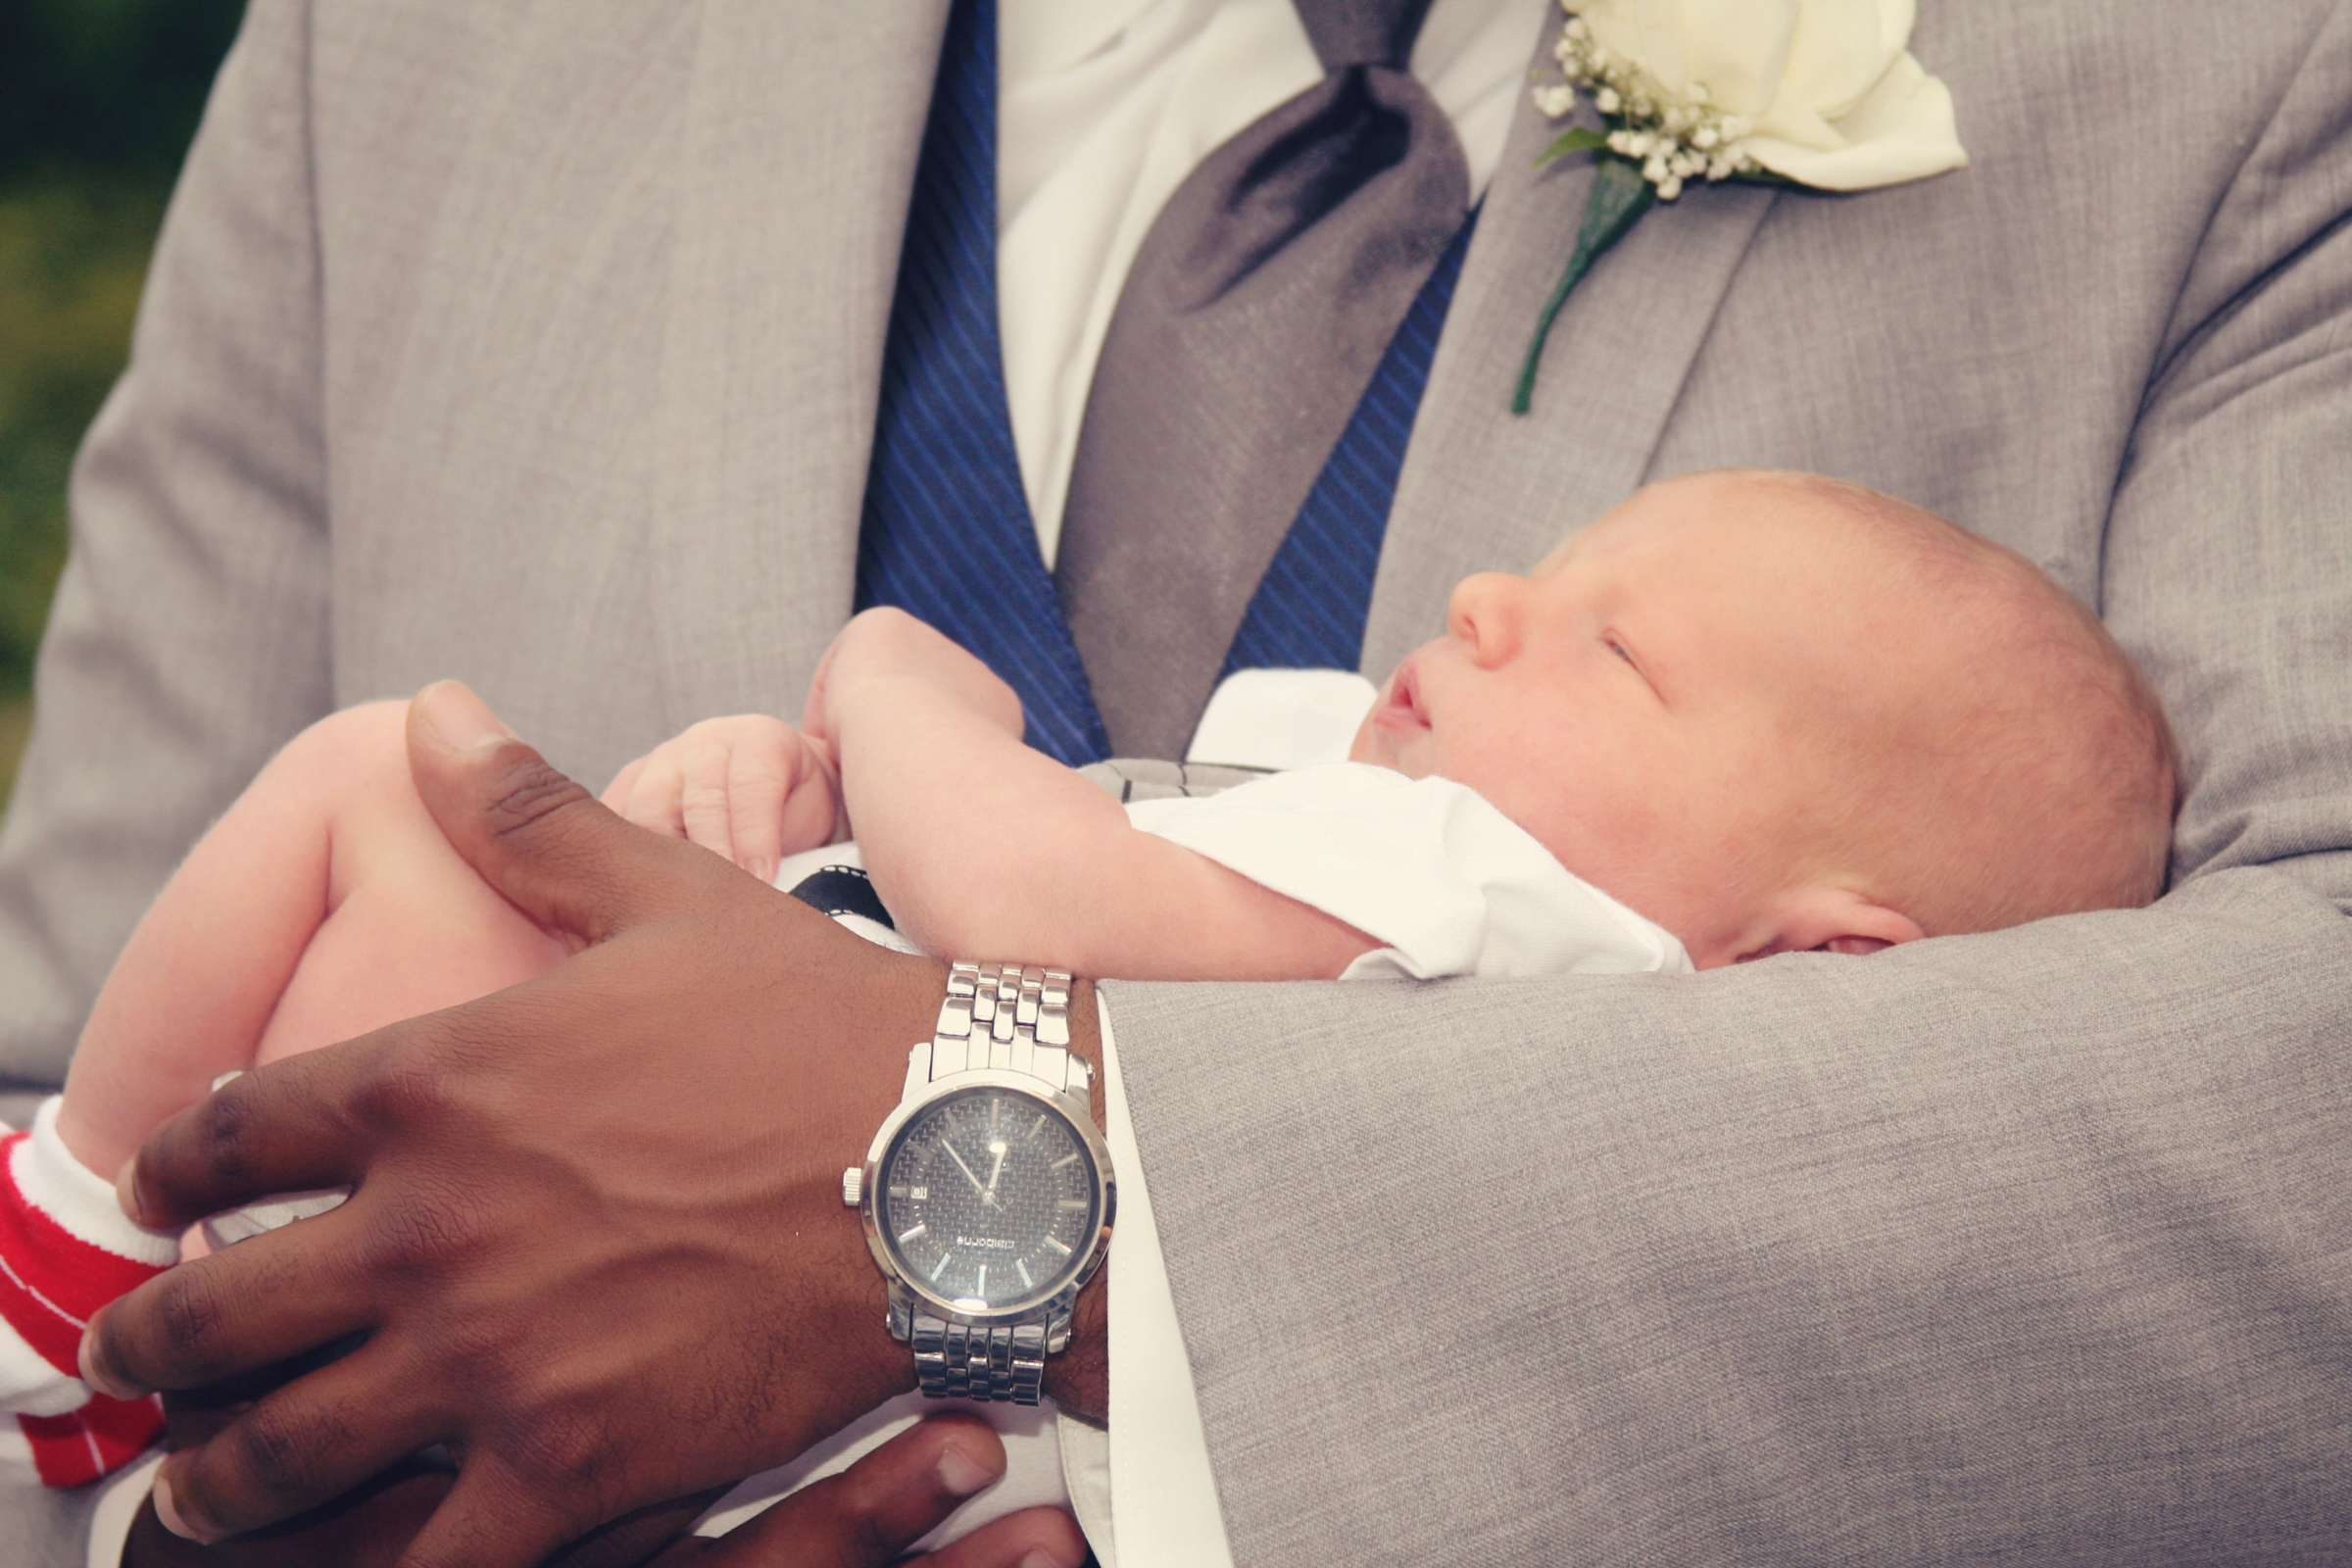 Christianity Can I have my baby christened?